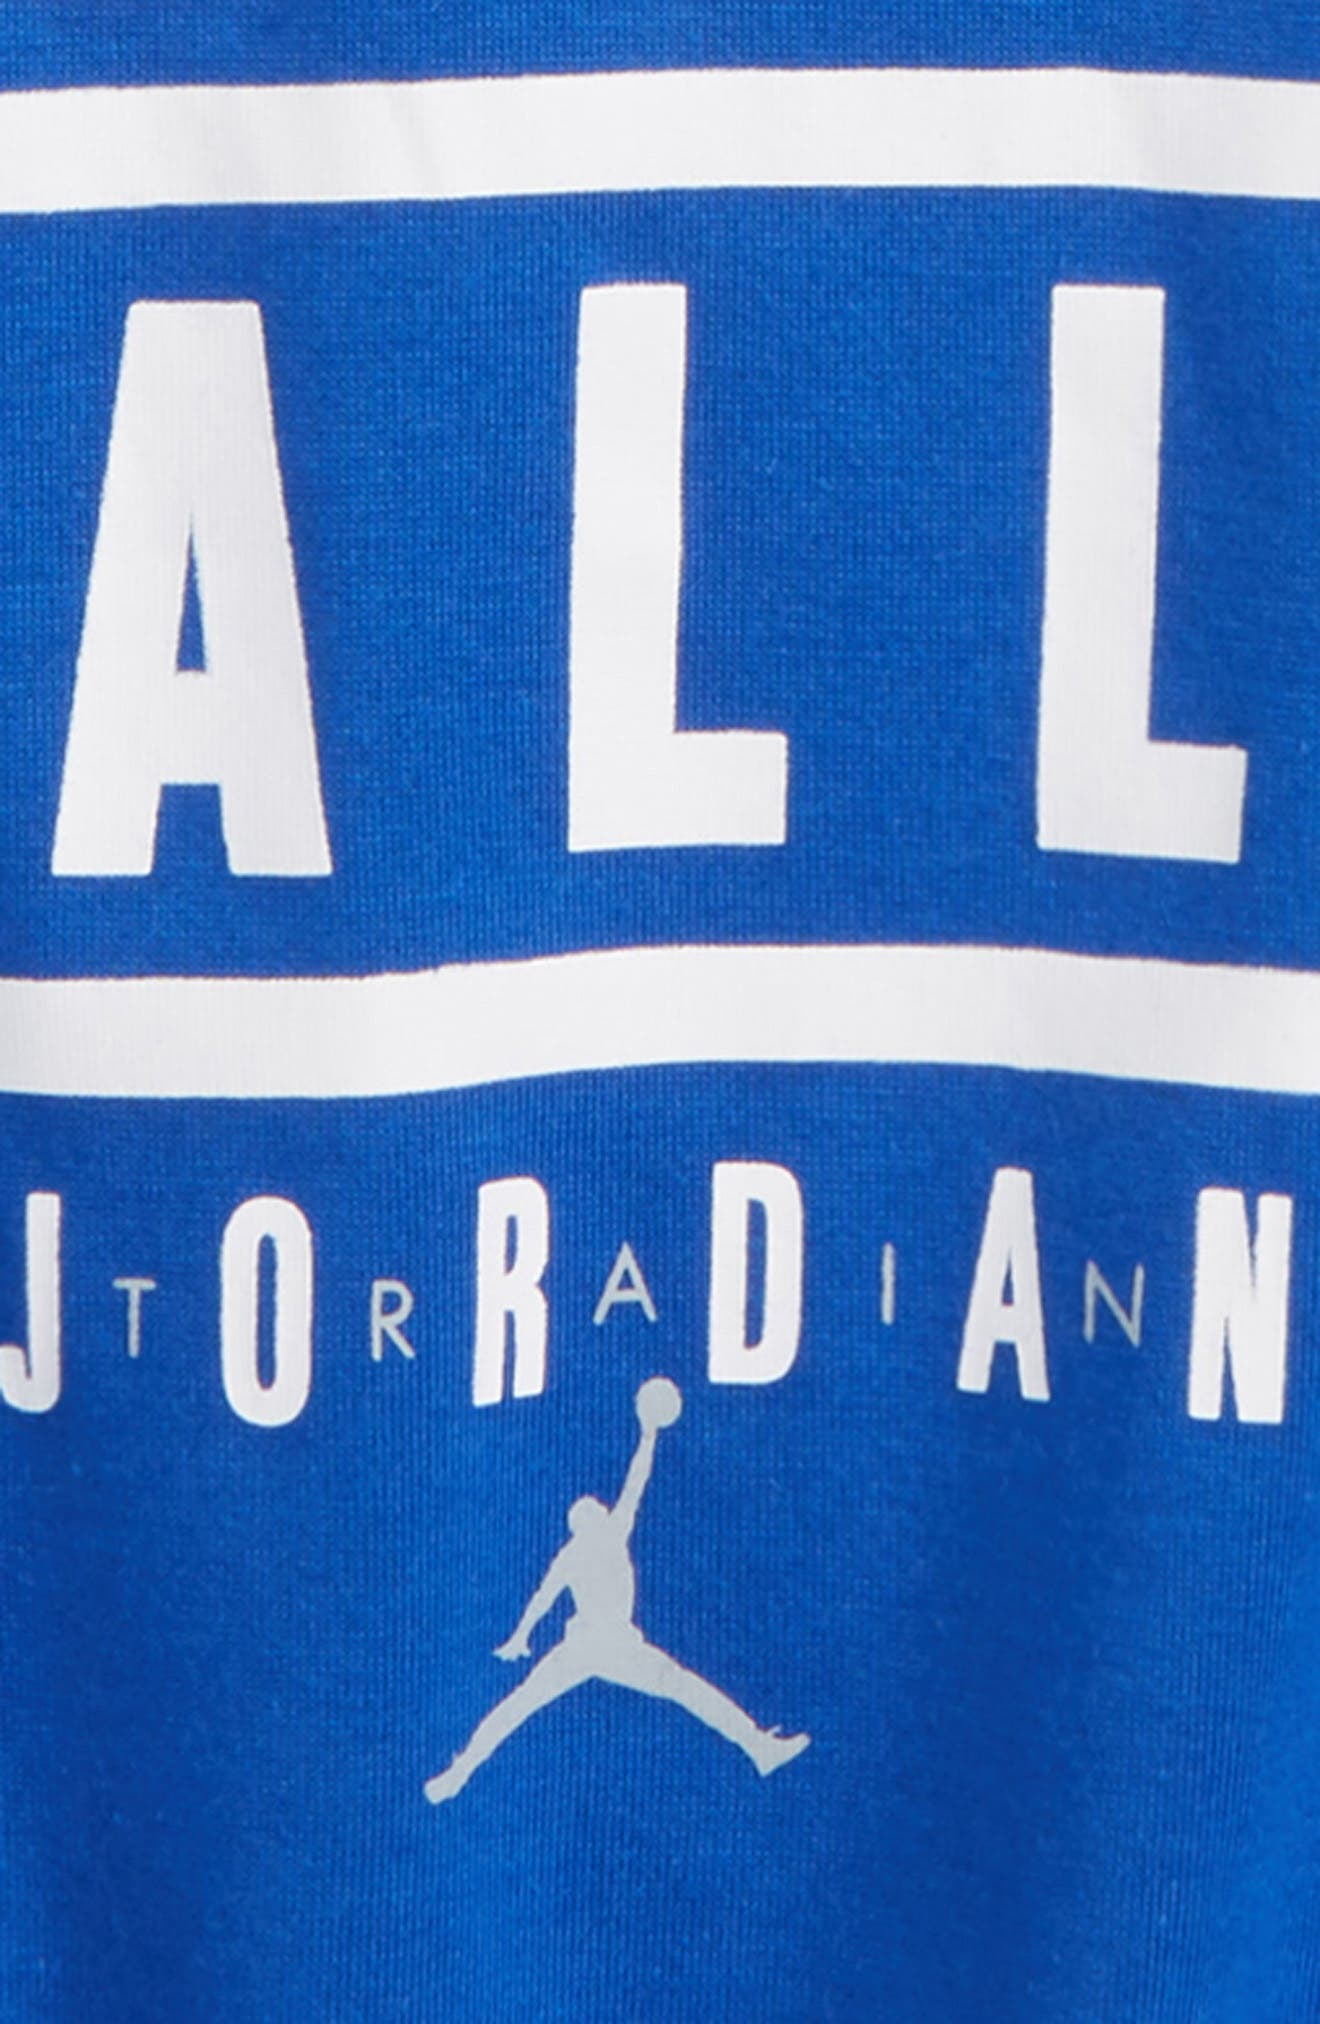 Jordan Motivational Dri-FIT T-Shirt,                             Alternate thumbnail 2, color,                             433